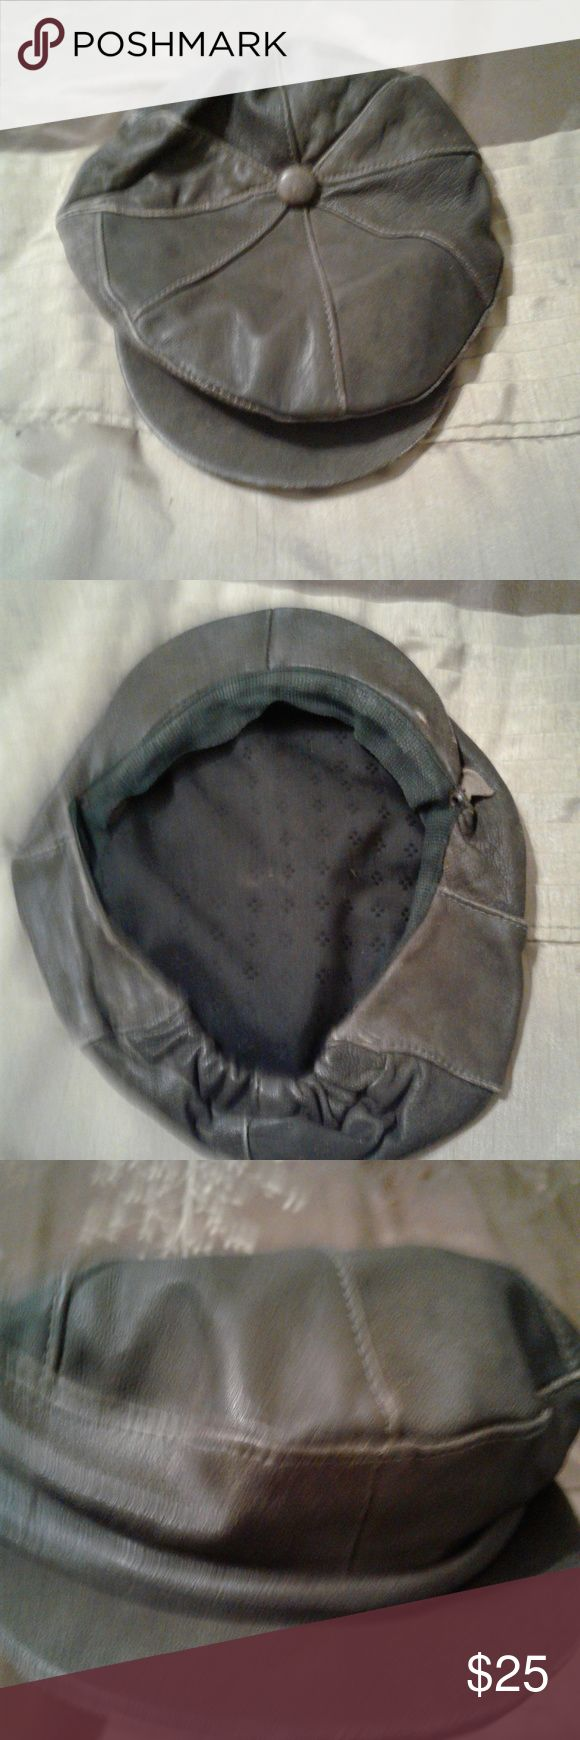 DISTRESSED LEATHER DRIVING CAP DISTRESSED LEATHER DRIVING CAP. Add the finishing touch with this leather hat. Size medium/large. Compare to: https://www.wilsonsleather.com/product/wilsons-leather-distressed-leather-driving-cap.do?sortby=ourPicks&from=fn Accessories Hats